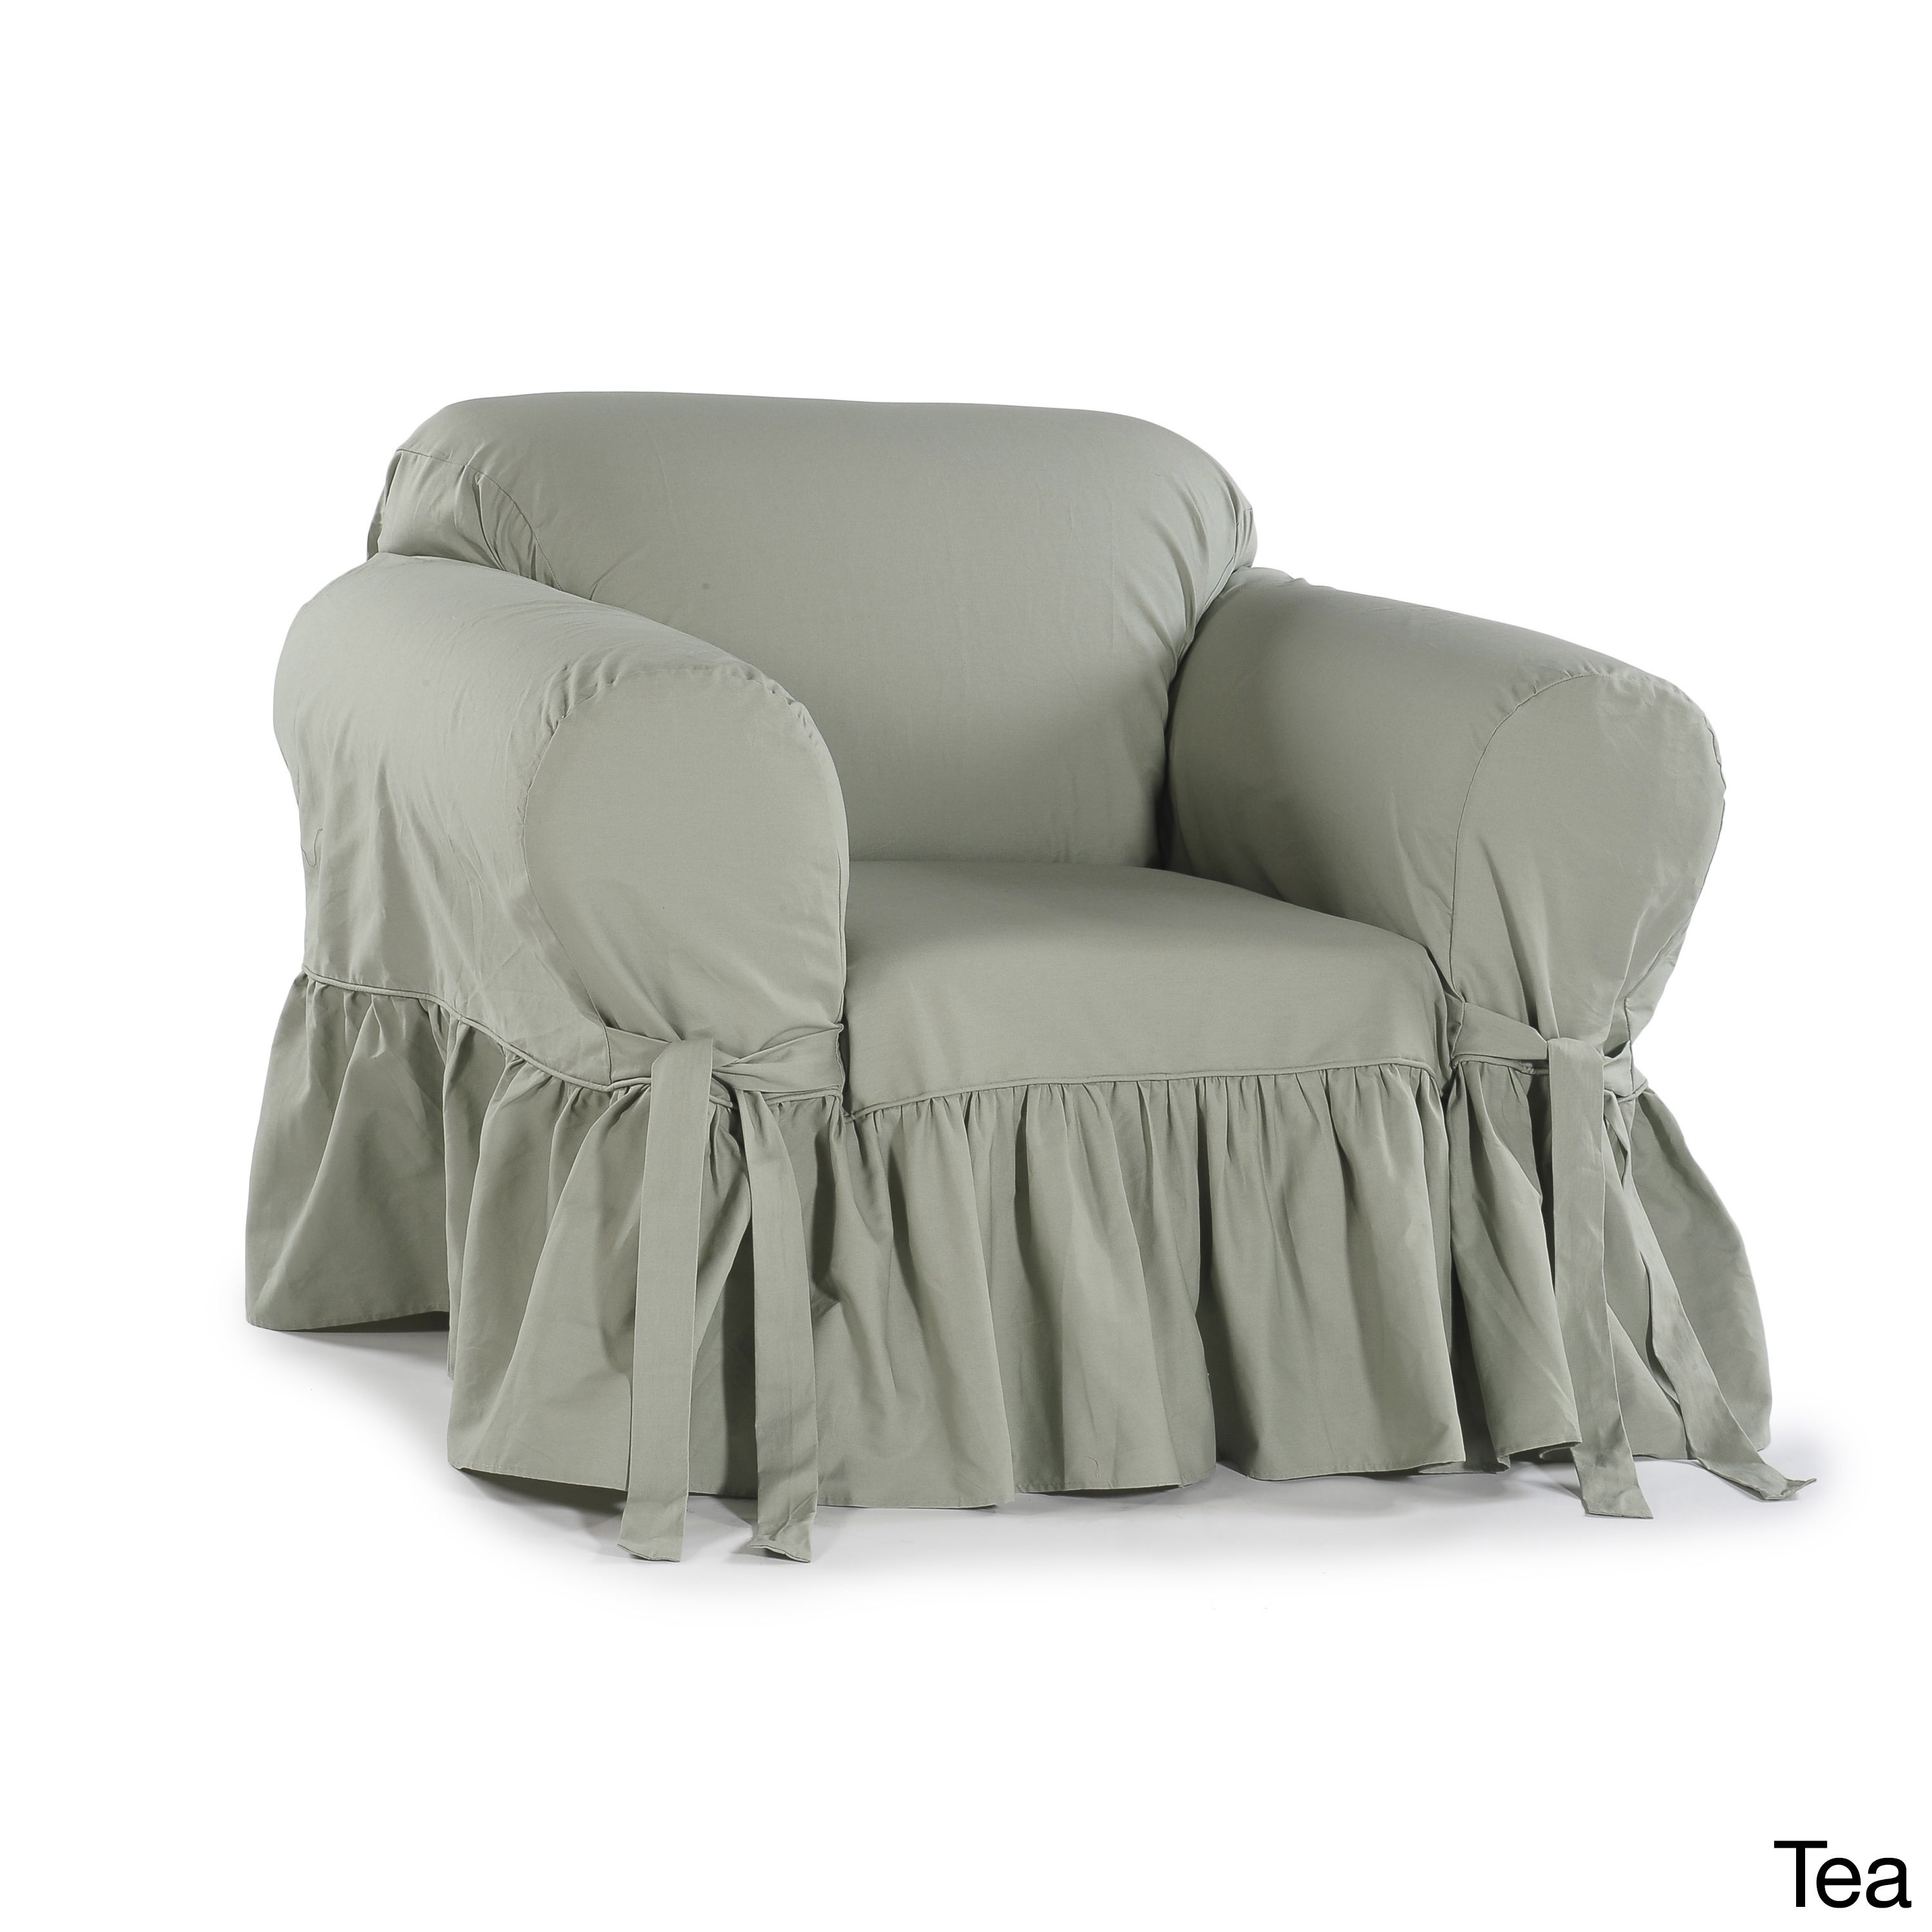 Ruffled Cotton Arm Chair Slipcover   Free Shipping Today   Overstock.com    16650049